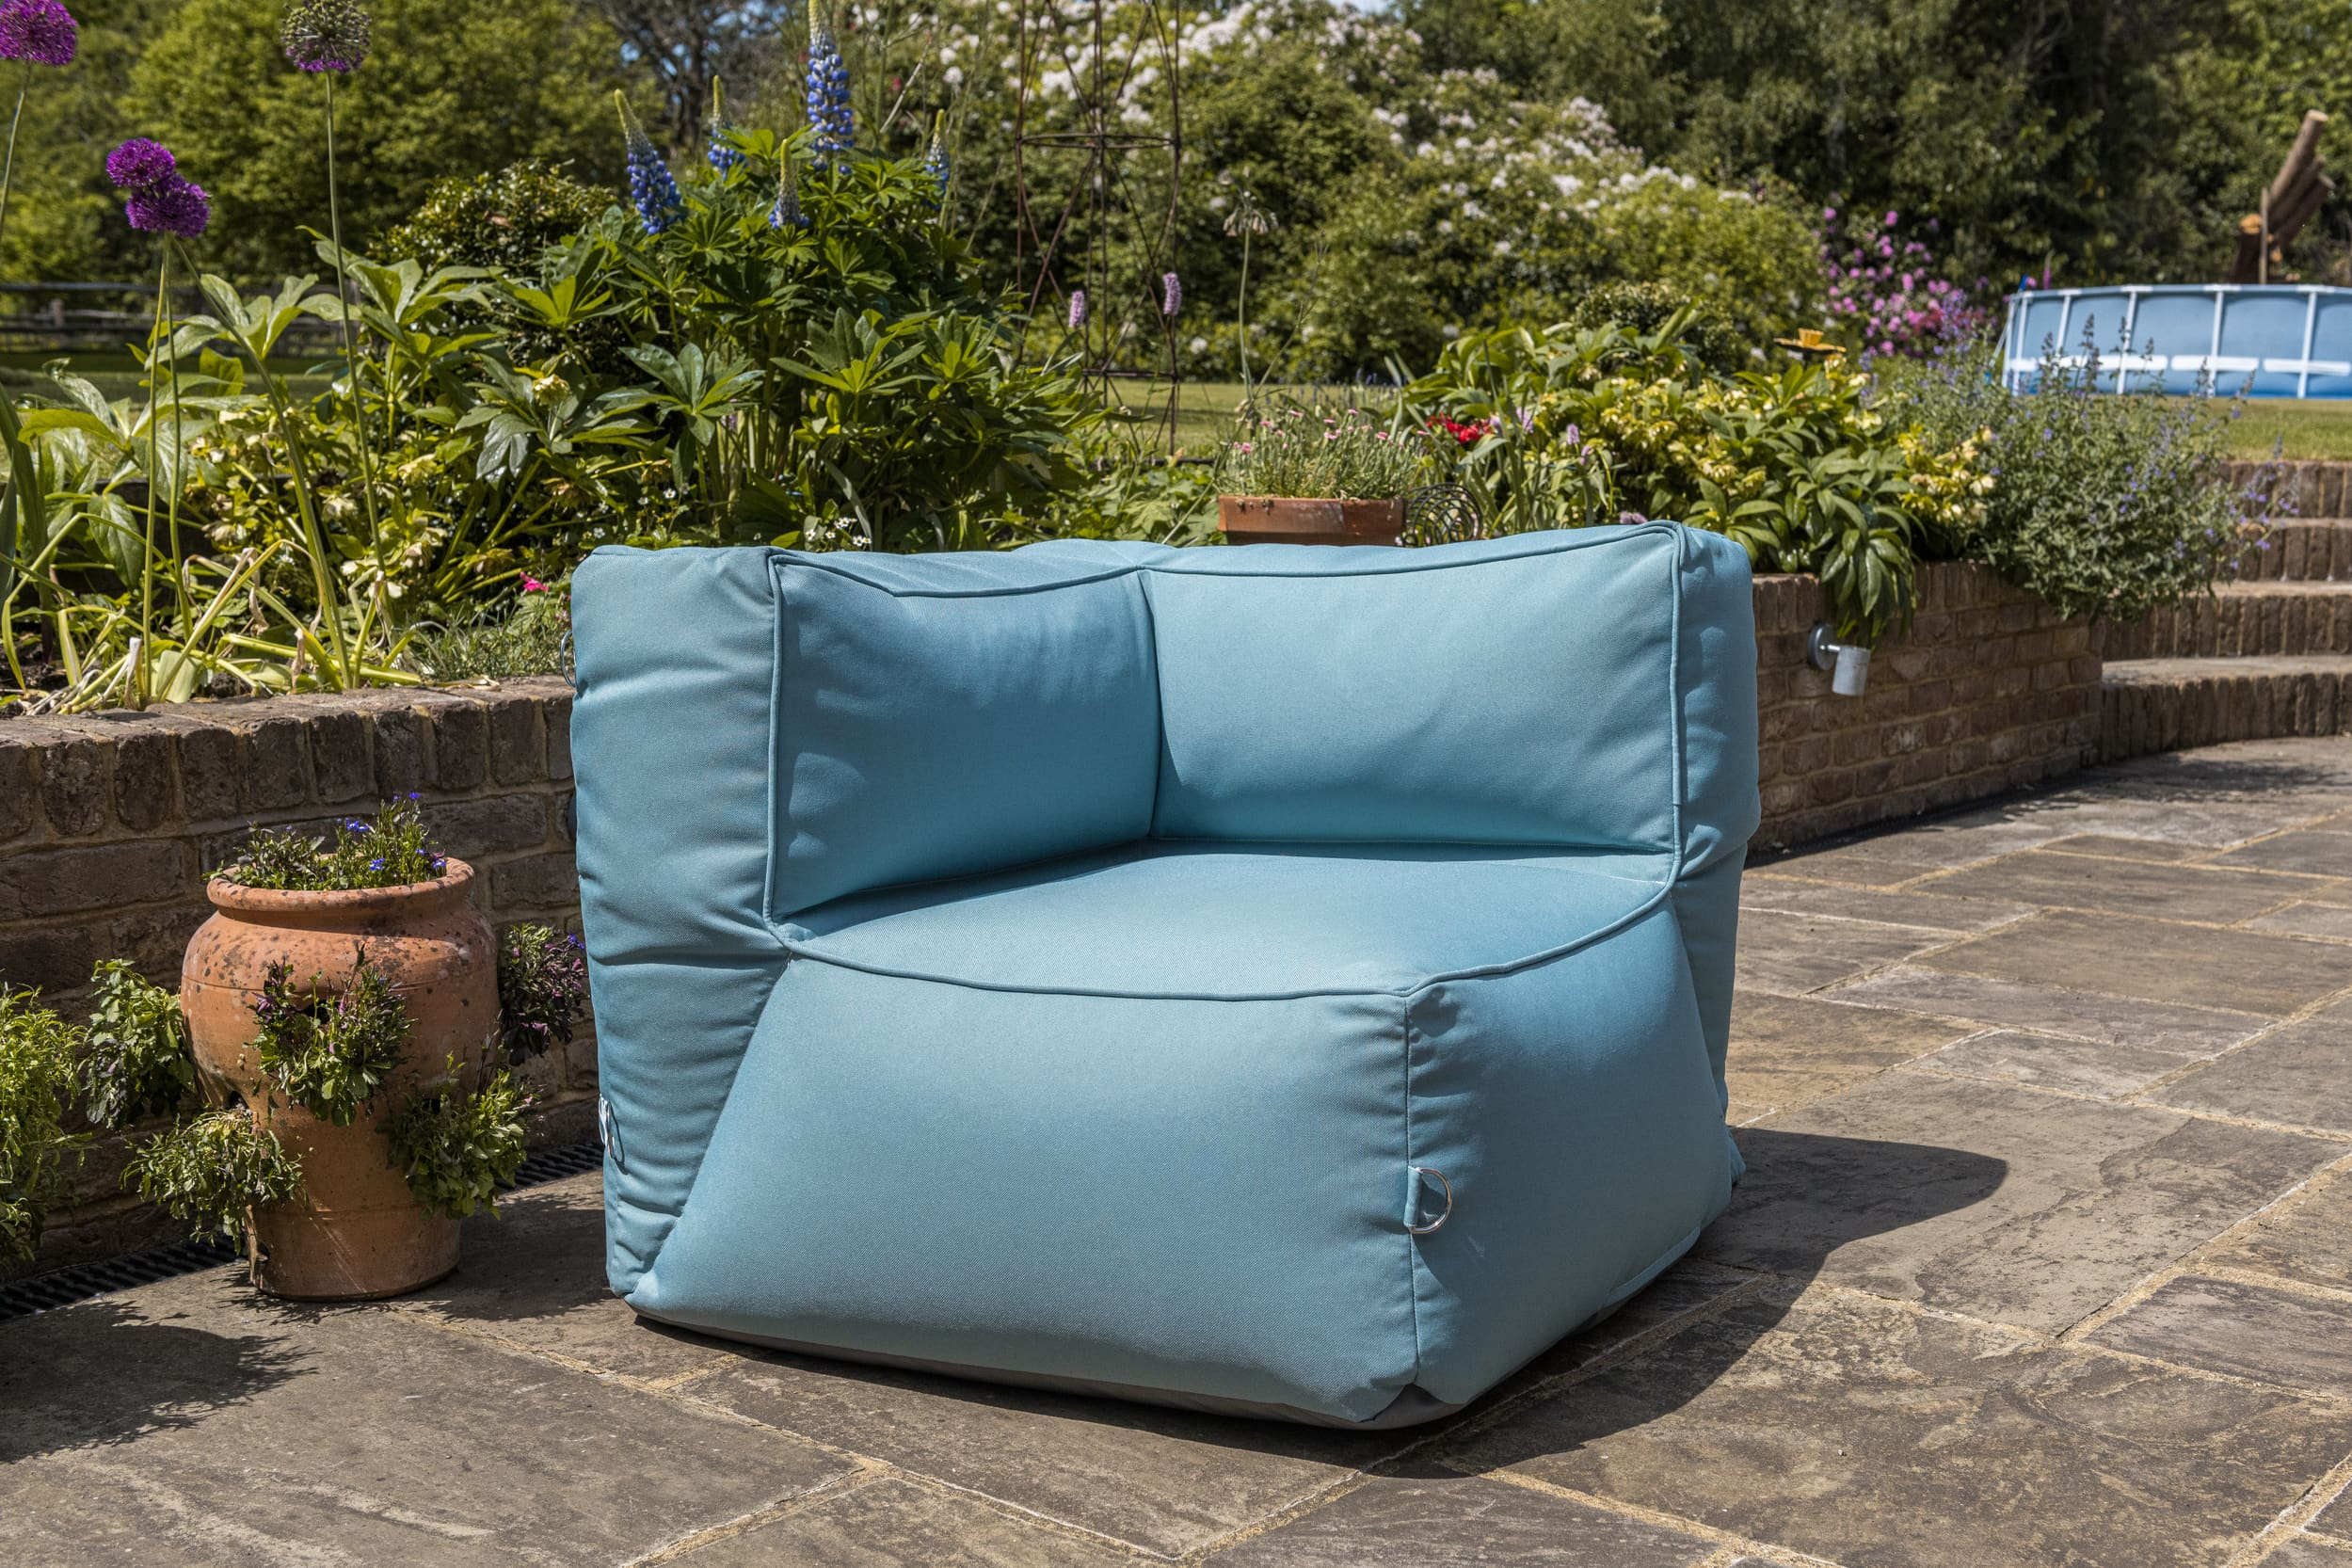 Adult Monaco Modular Bean Bag Corner Chair in Ocean Blue